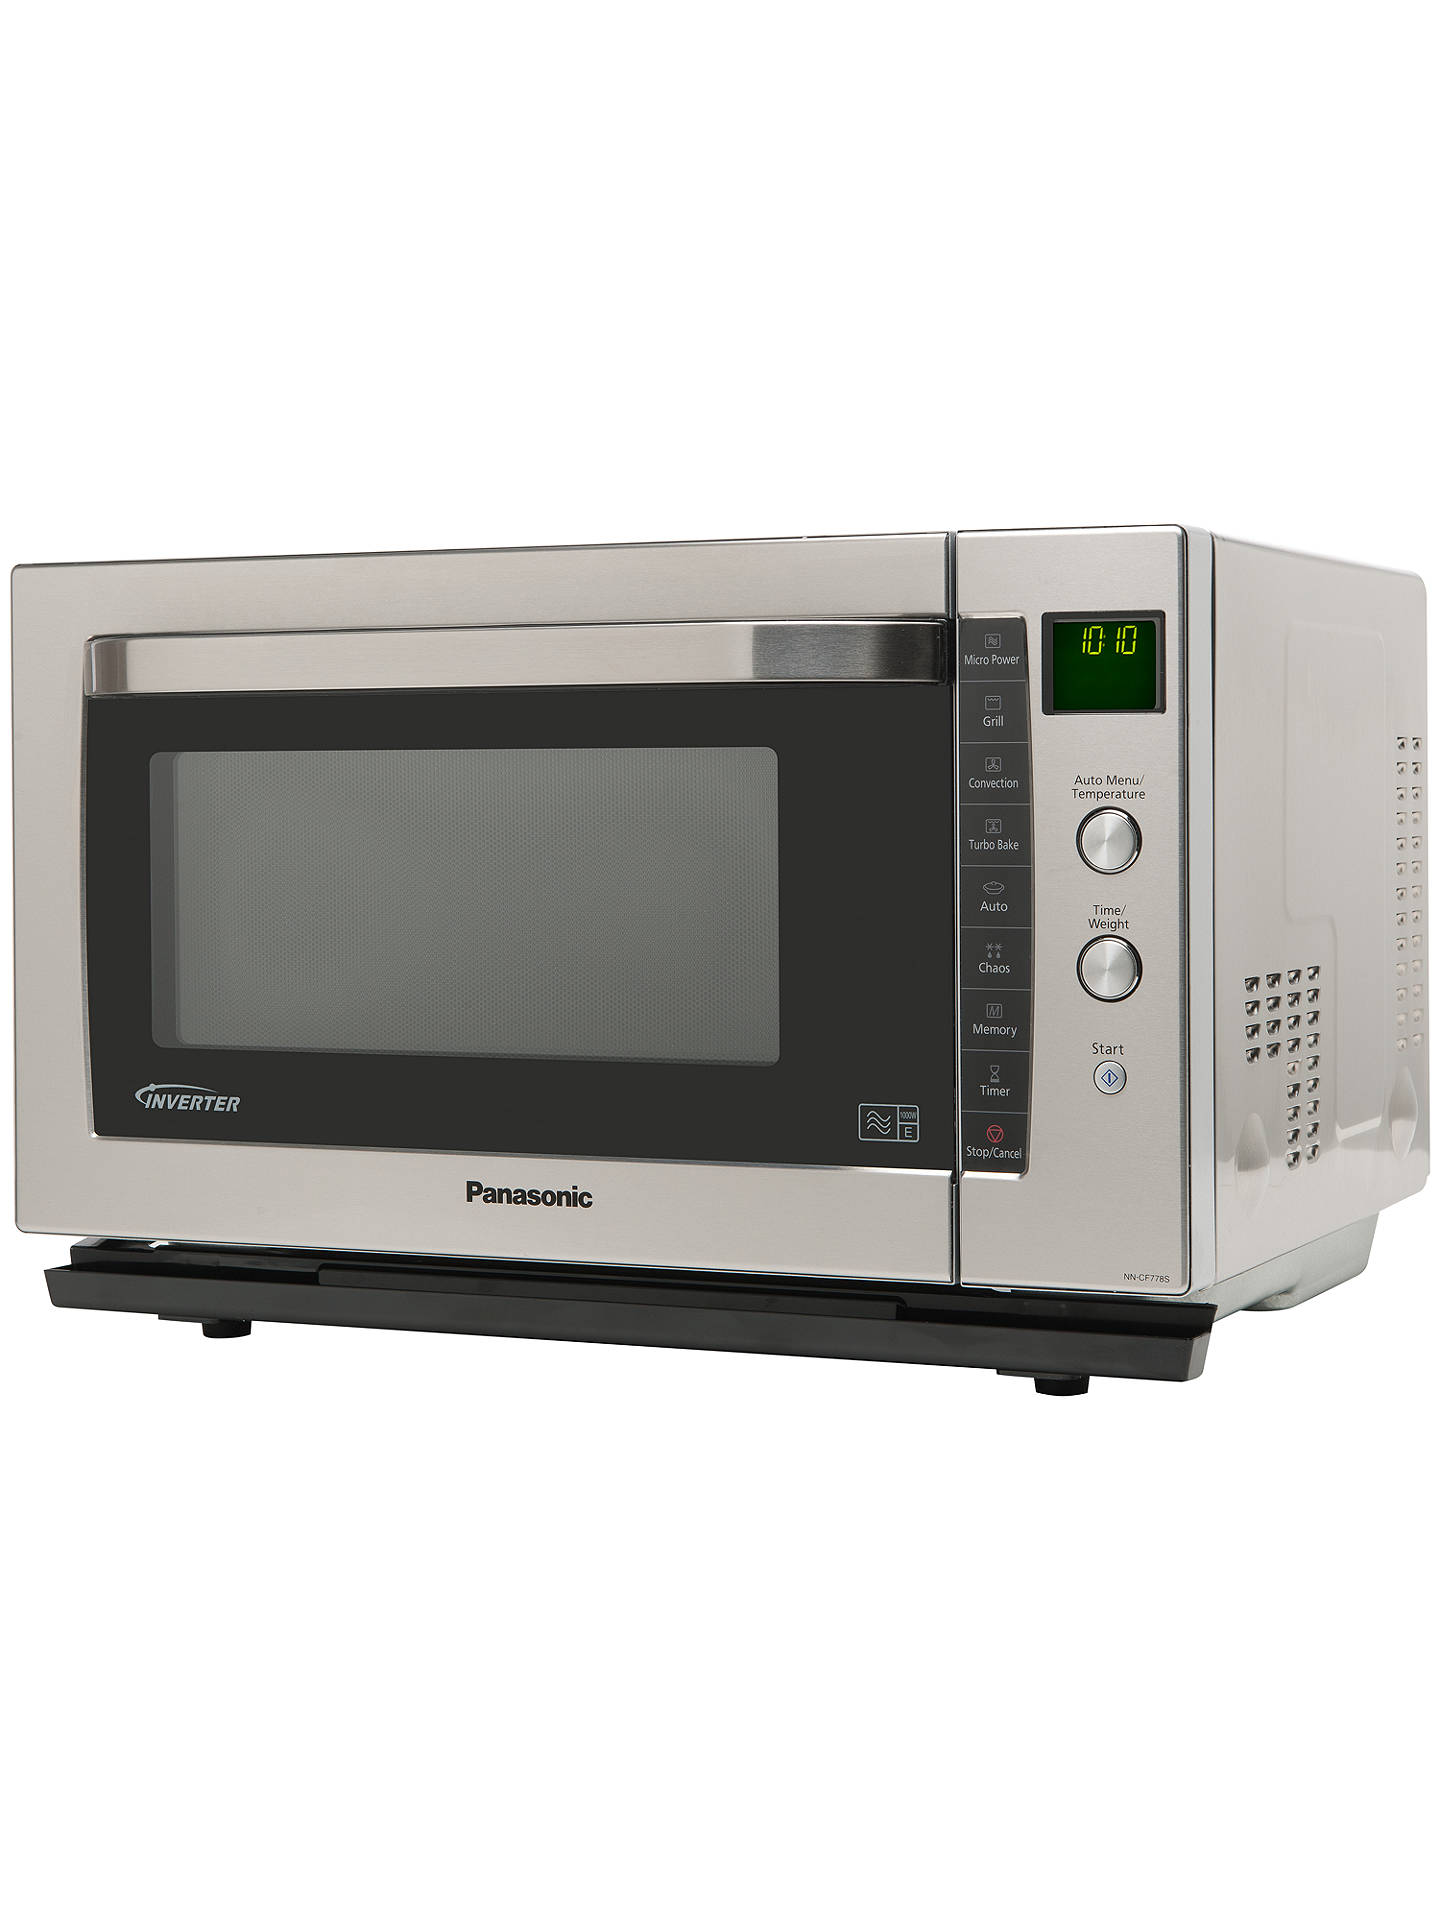 Panasonic Nn Cf778sbpq Combination Microwave Oven Stainless Steel Online At Johnlewis